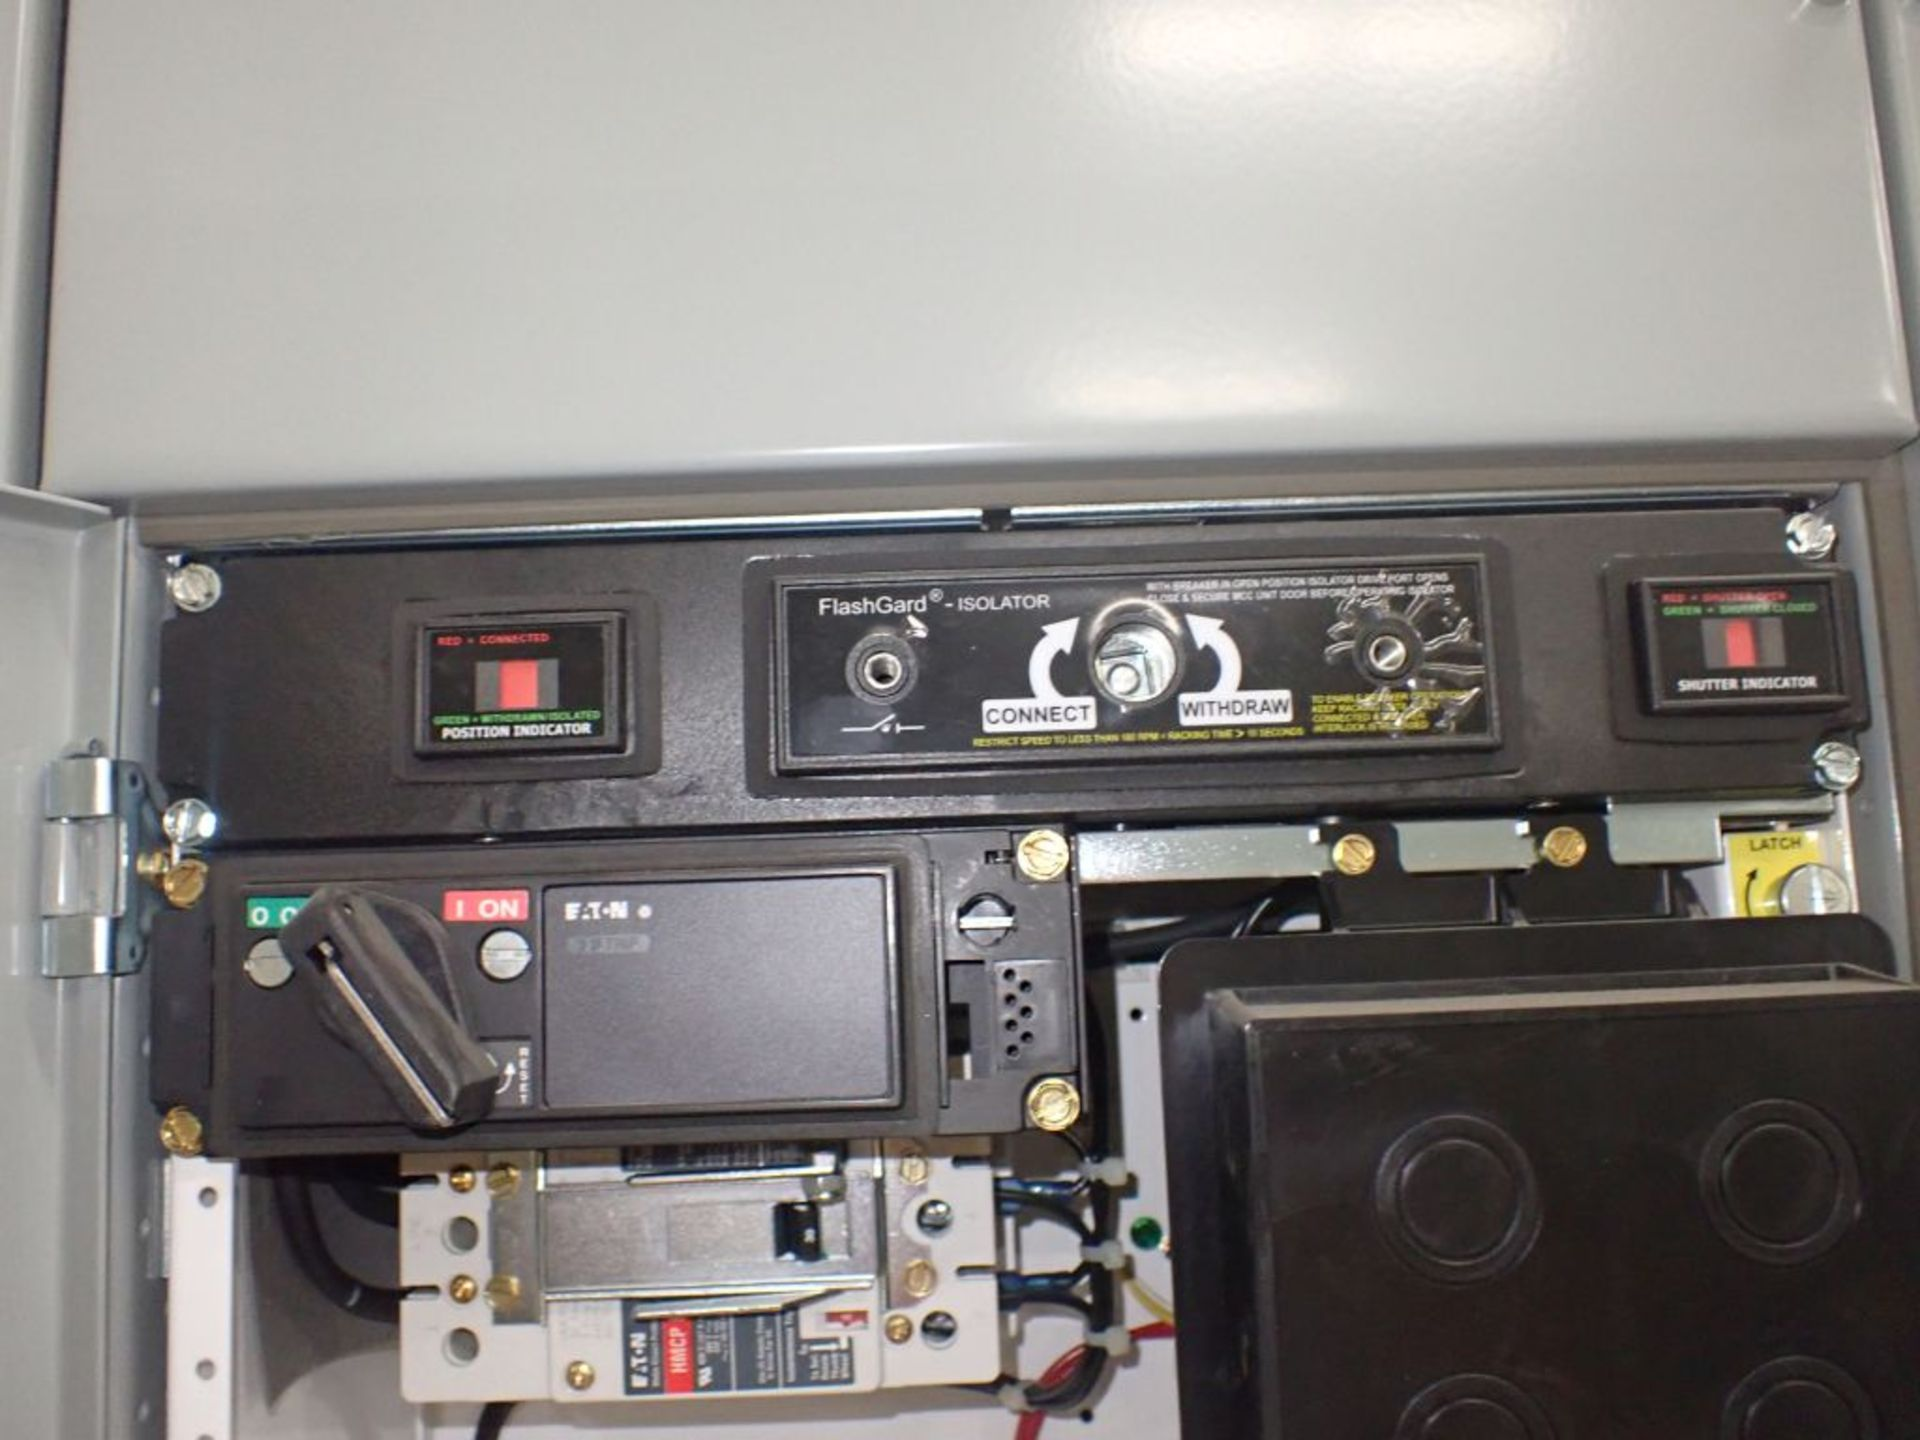 Eaton Freedom 2100 Series Motor Control Center | (2) F206-7A-10HP; (3) F206-15A-10HP; (1) FDRB-100A; - Image 32 of 87